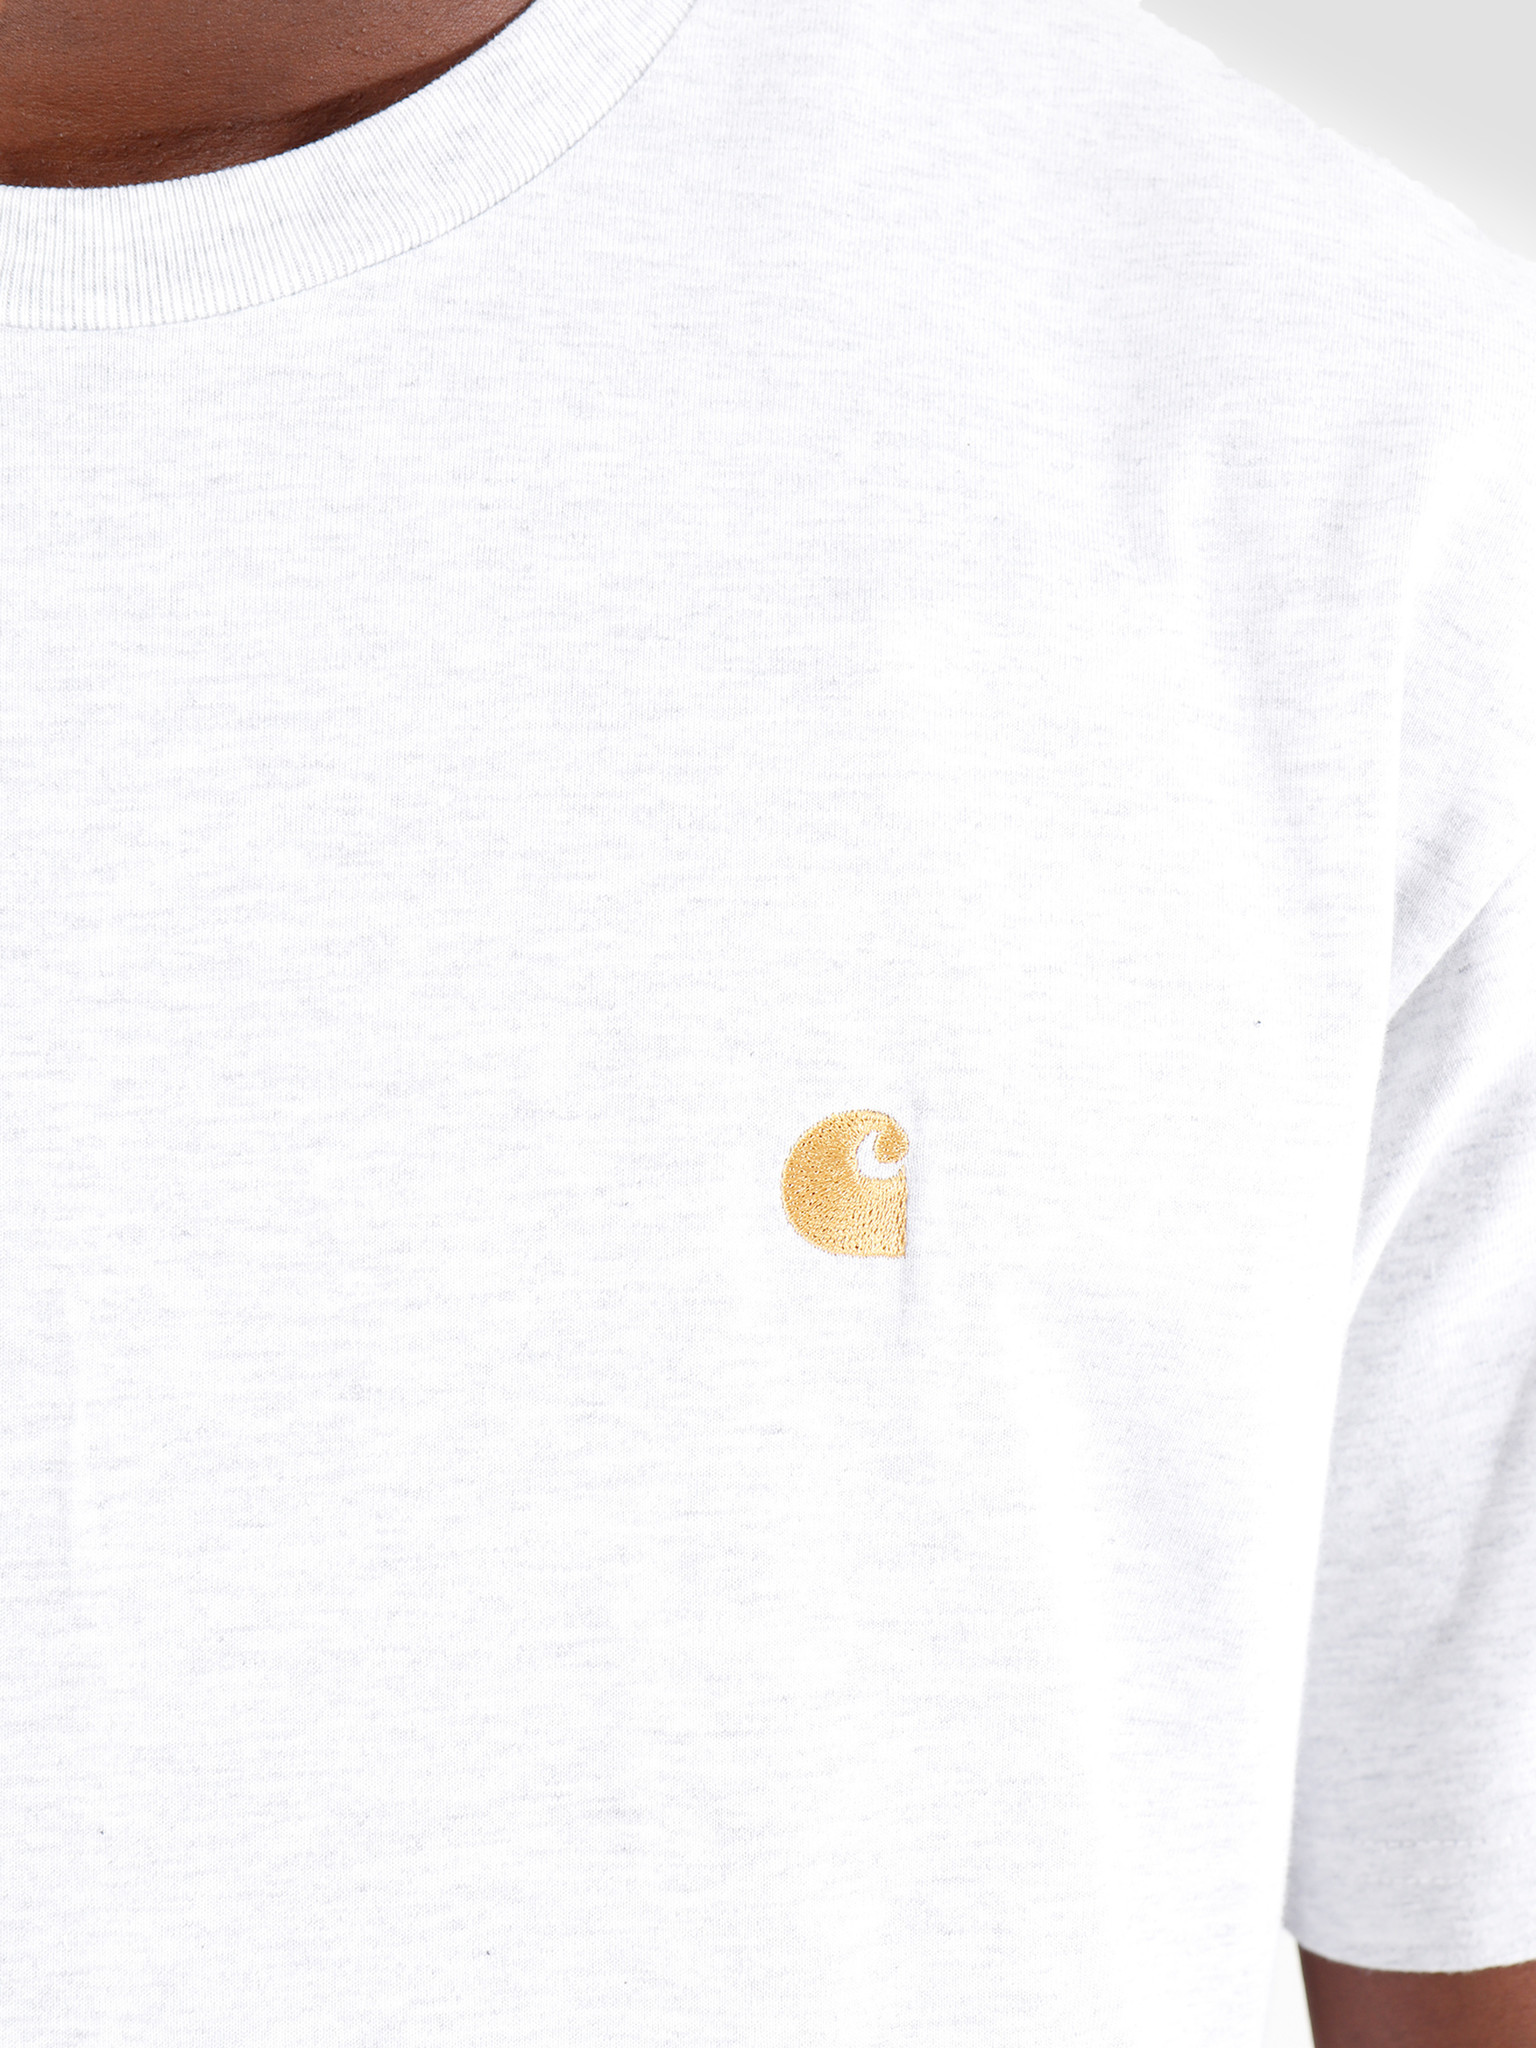 Carhartt WIP Carhartt WIP Chase T-Shirt Ash Heather Gold I026391-48290